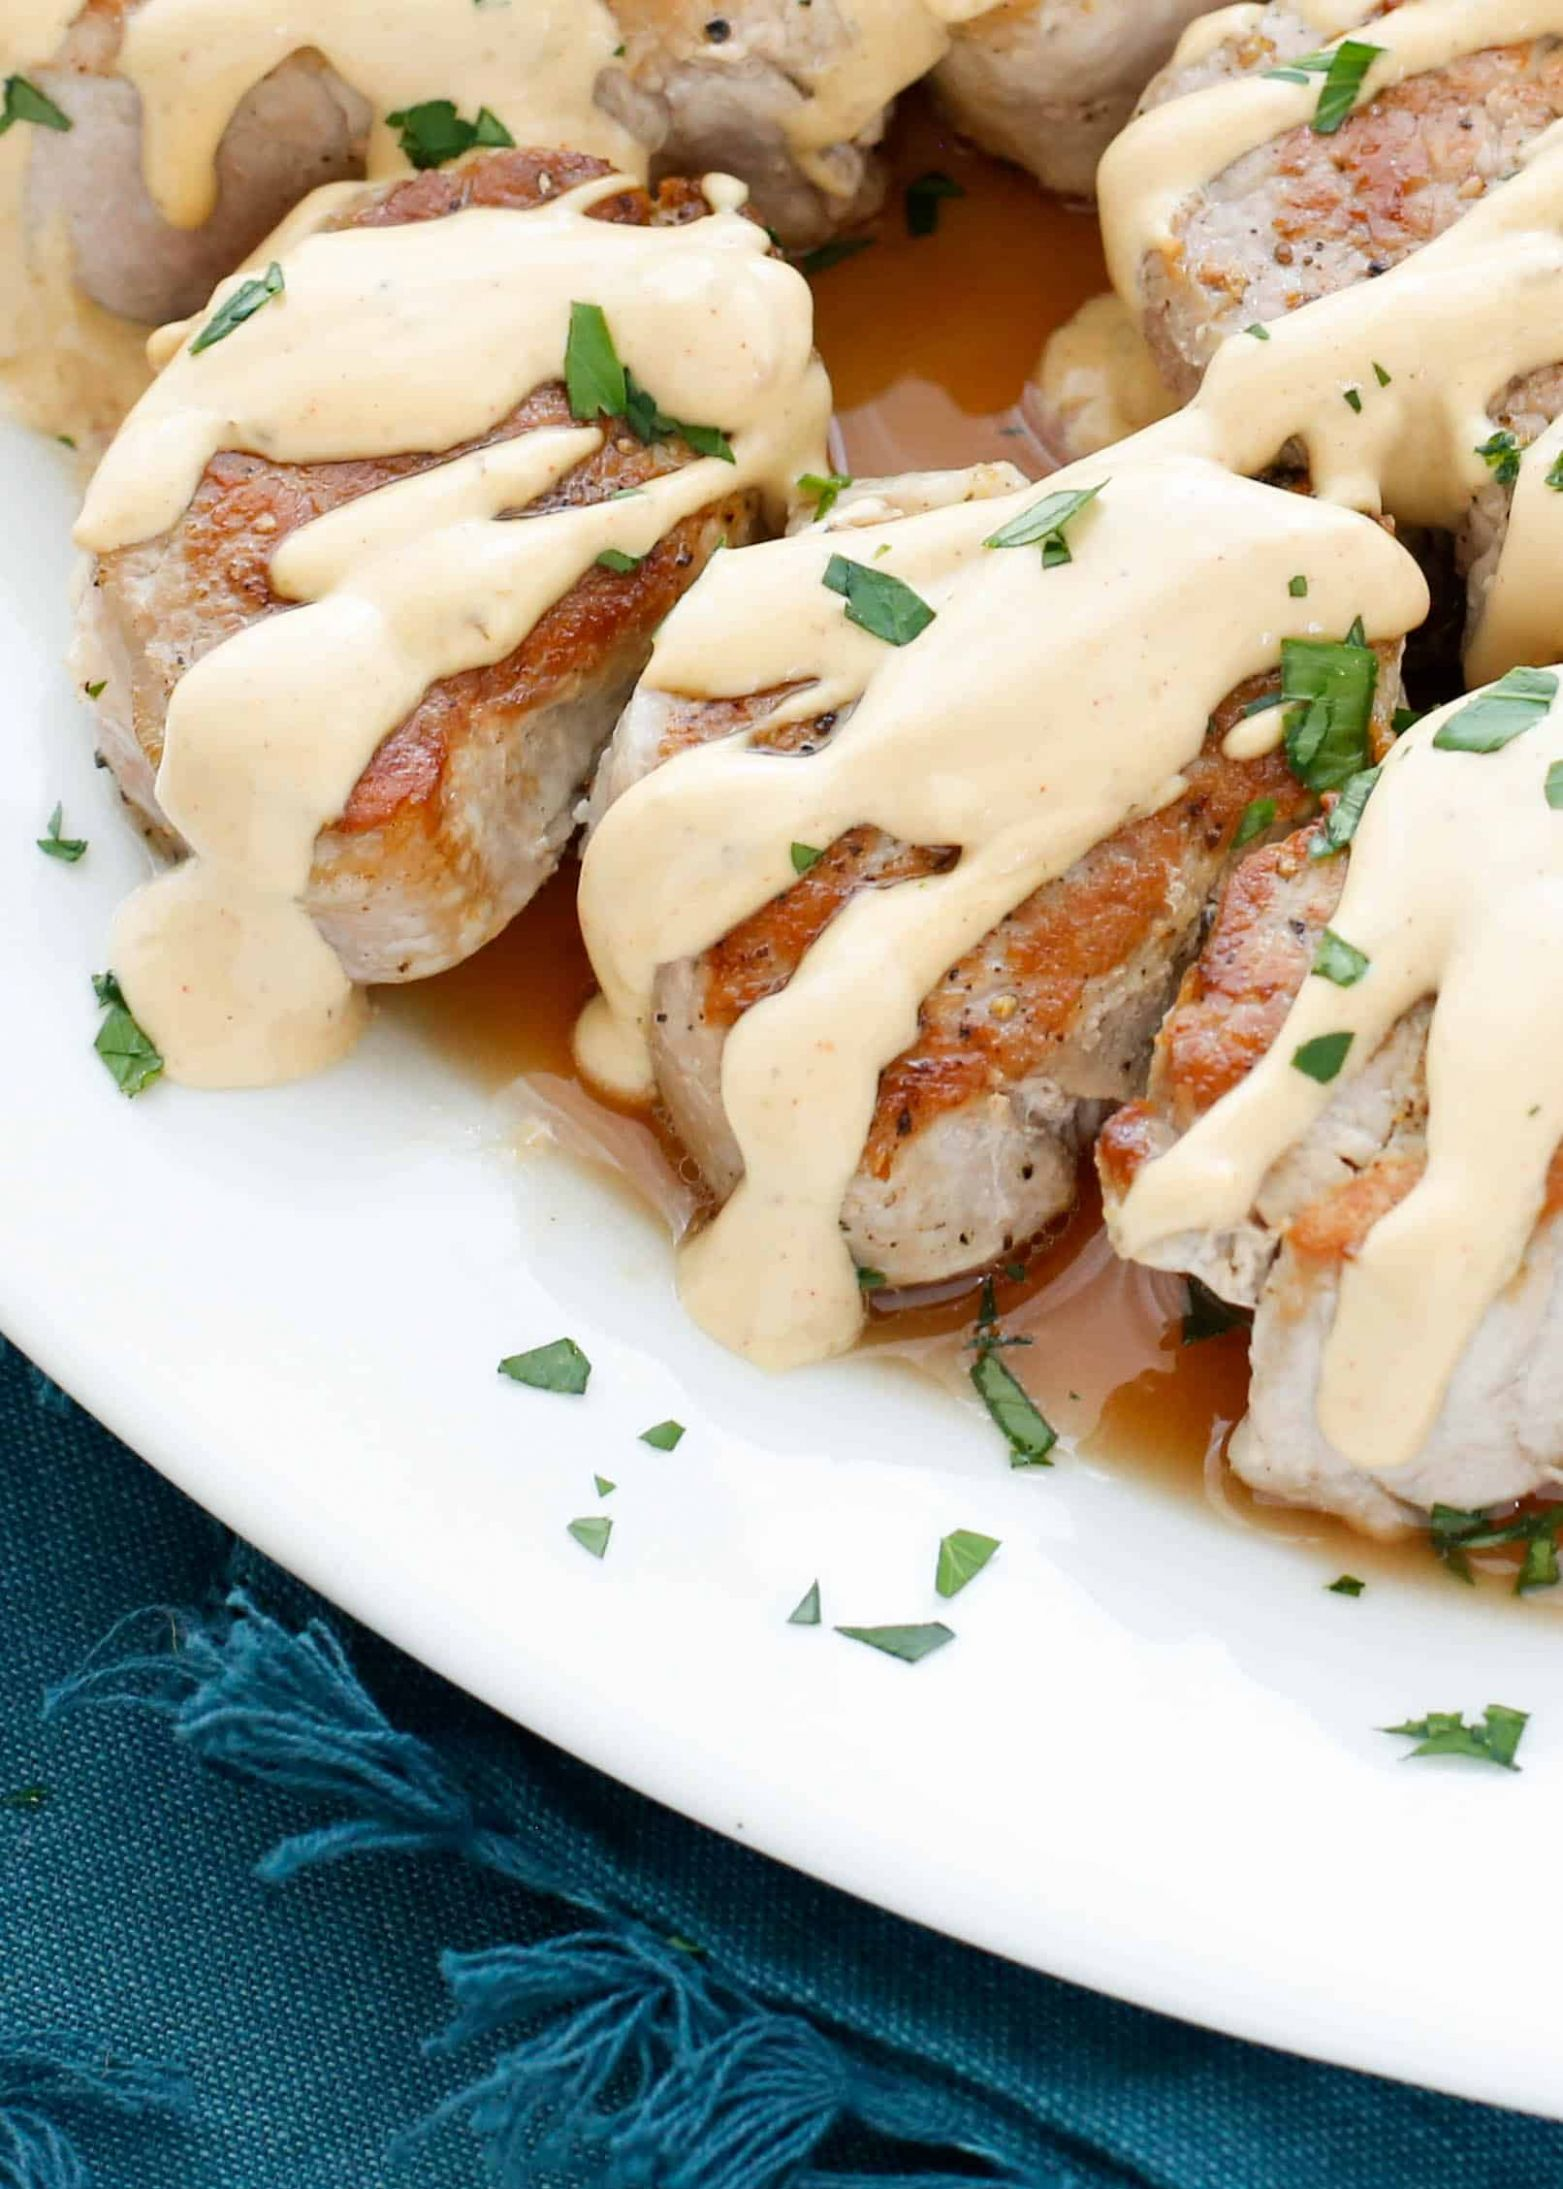 Pan Fried Pork Medallions with Creamy Wine Sauce - Recipes Pork Loin Medallions